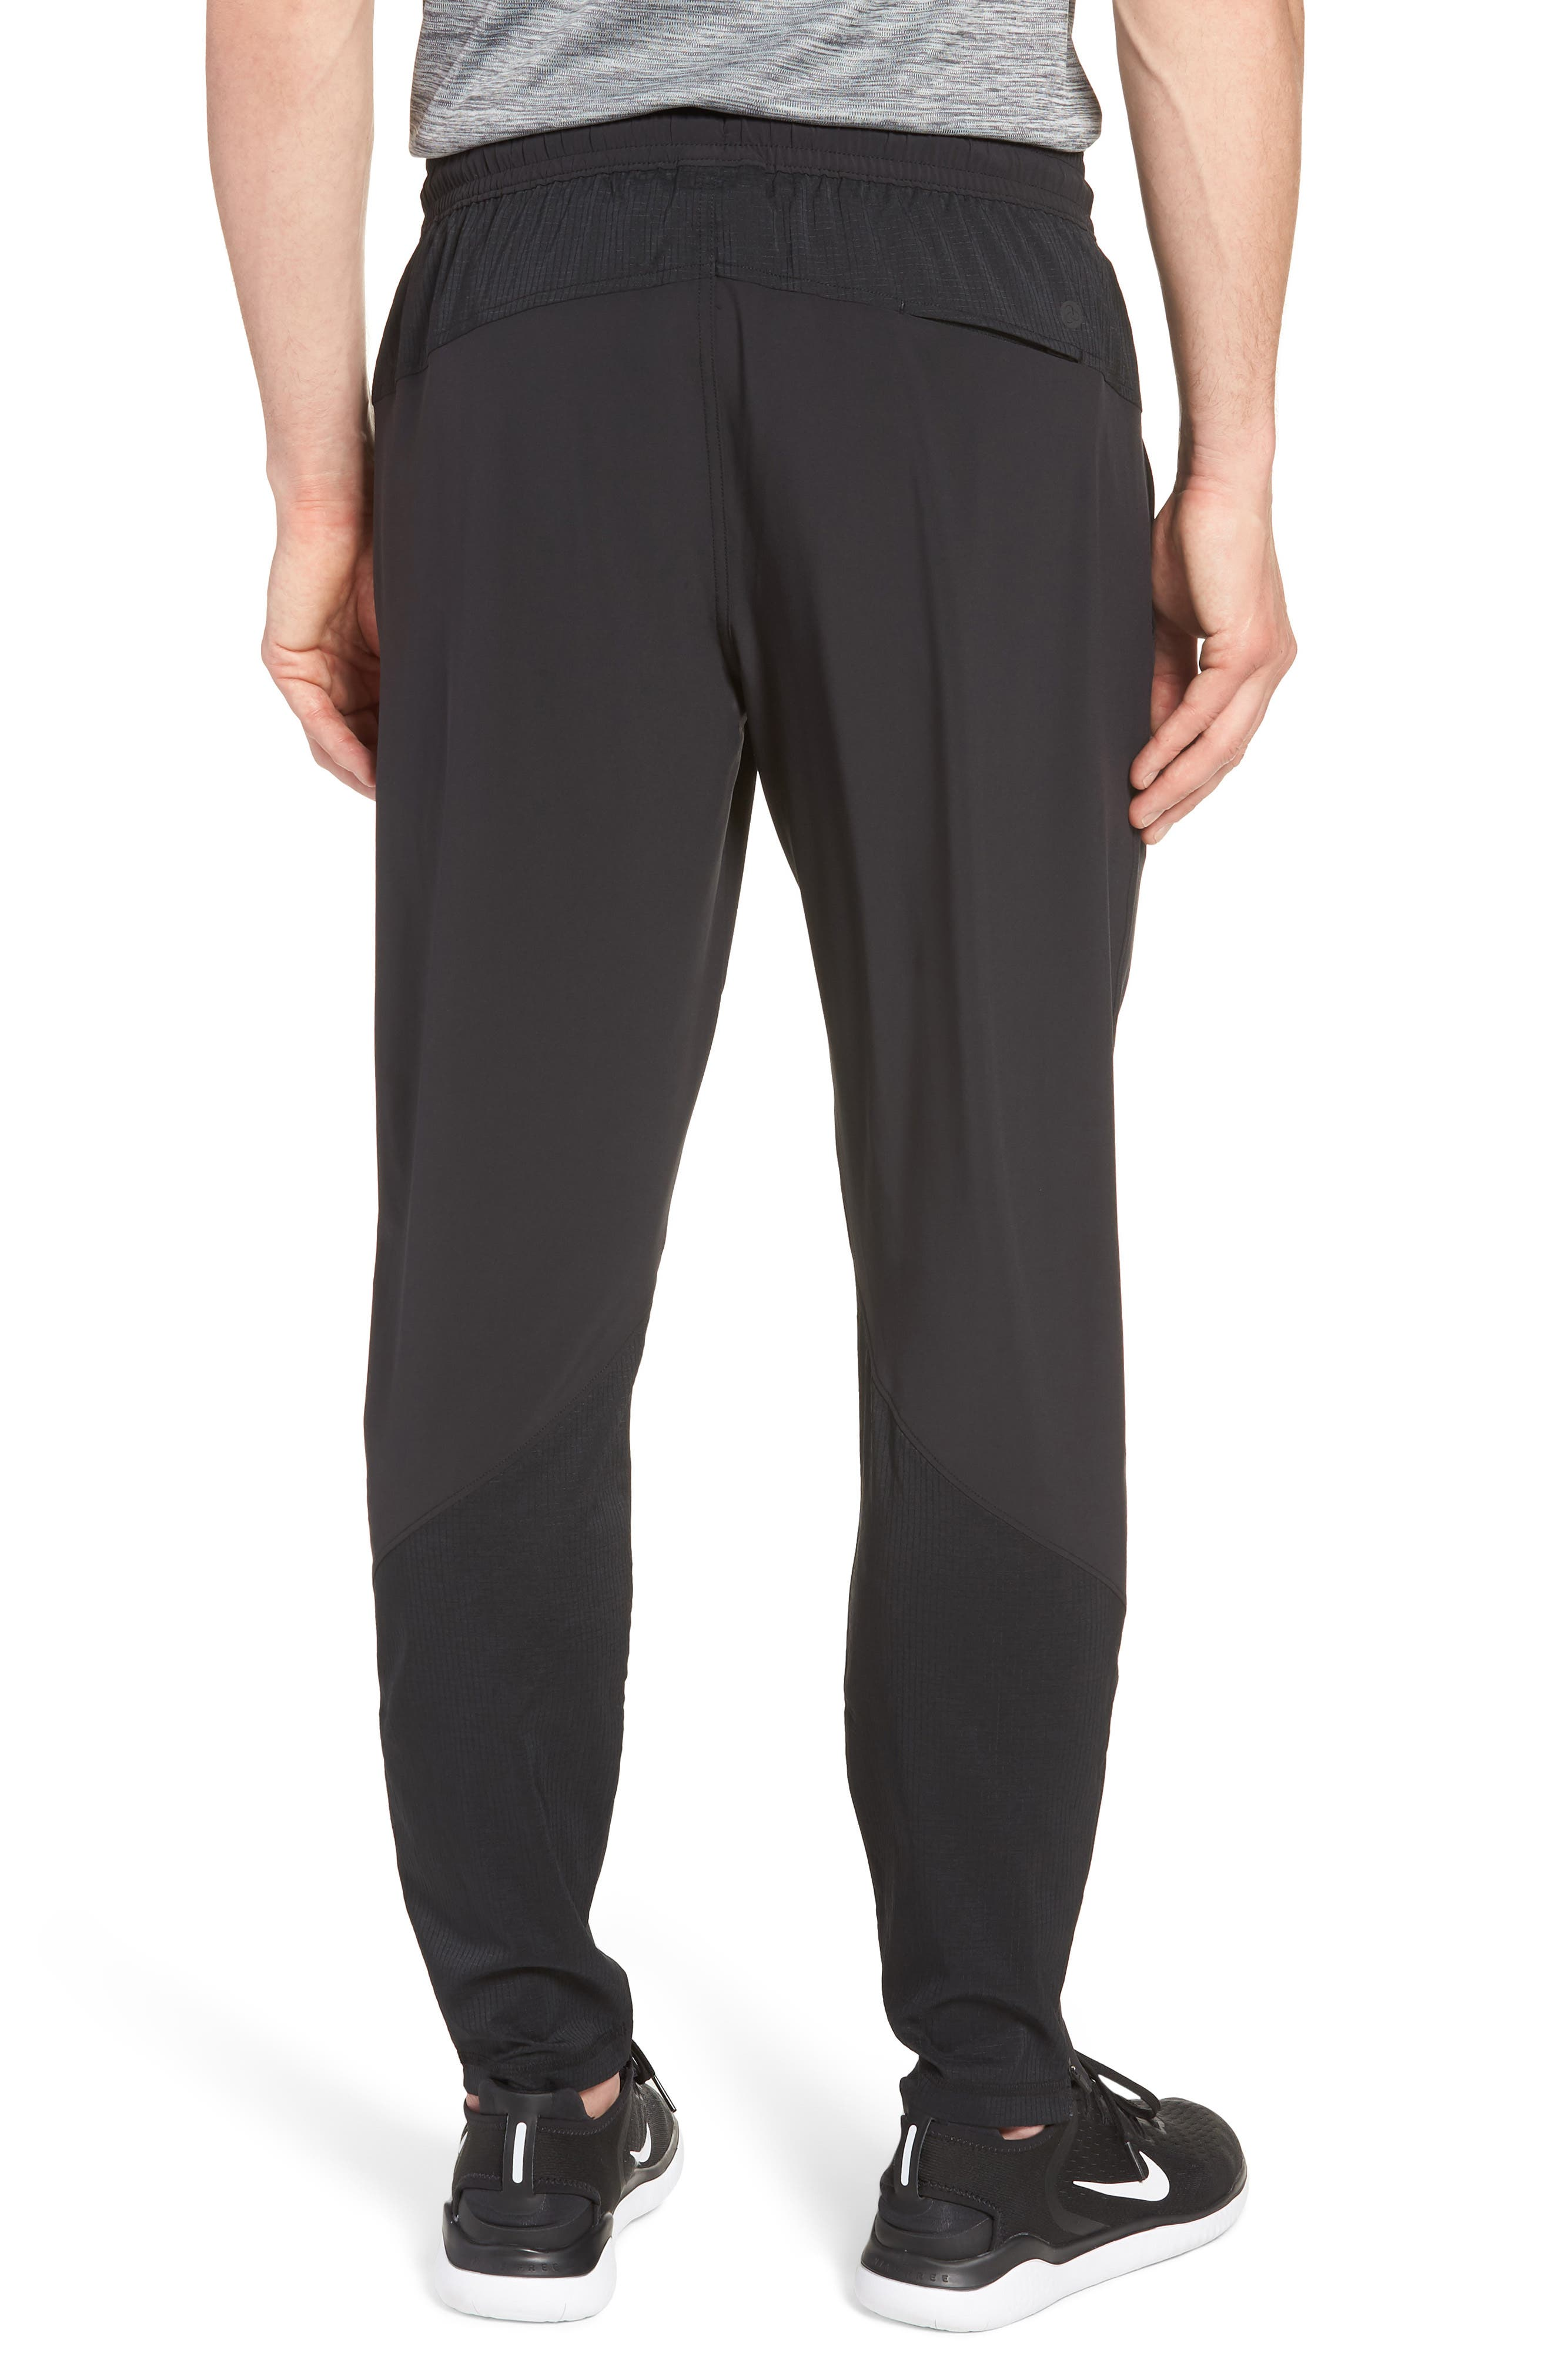 Graphite Tapered Athletic Pants,                             Alternate thumbnail 2, color,                             BLACK